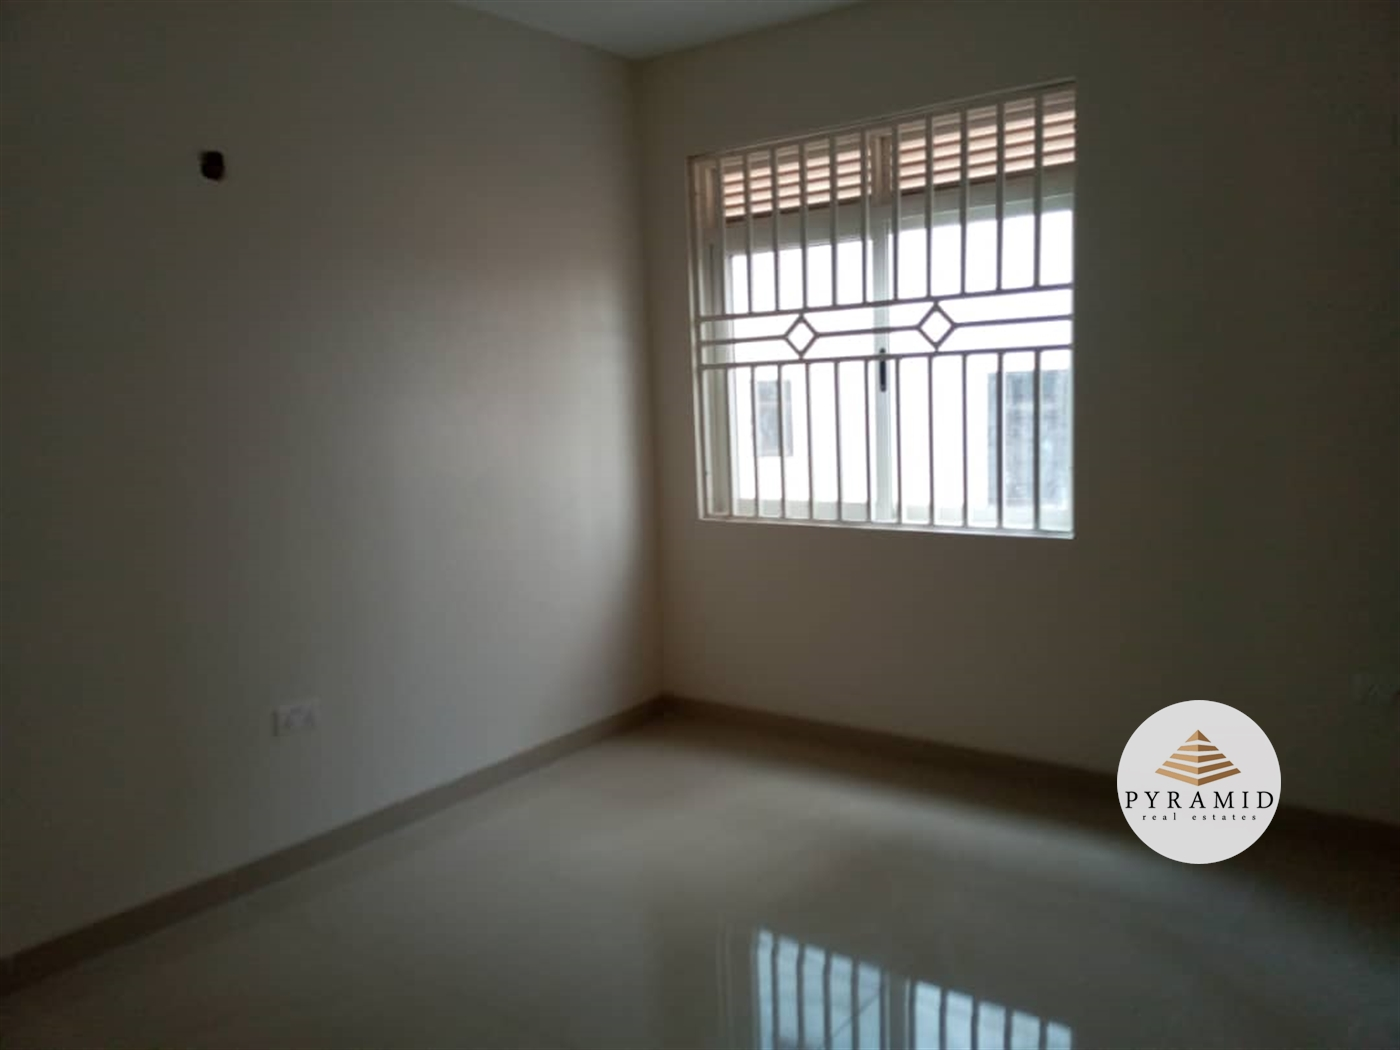 Storyed house for rent in Ntinda Kampala